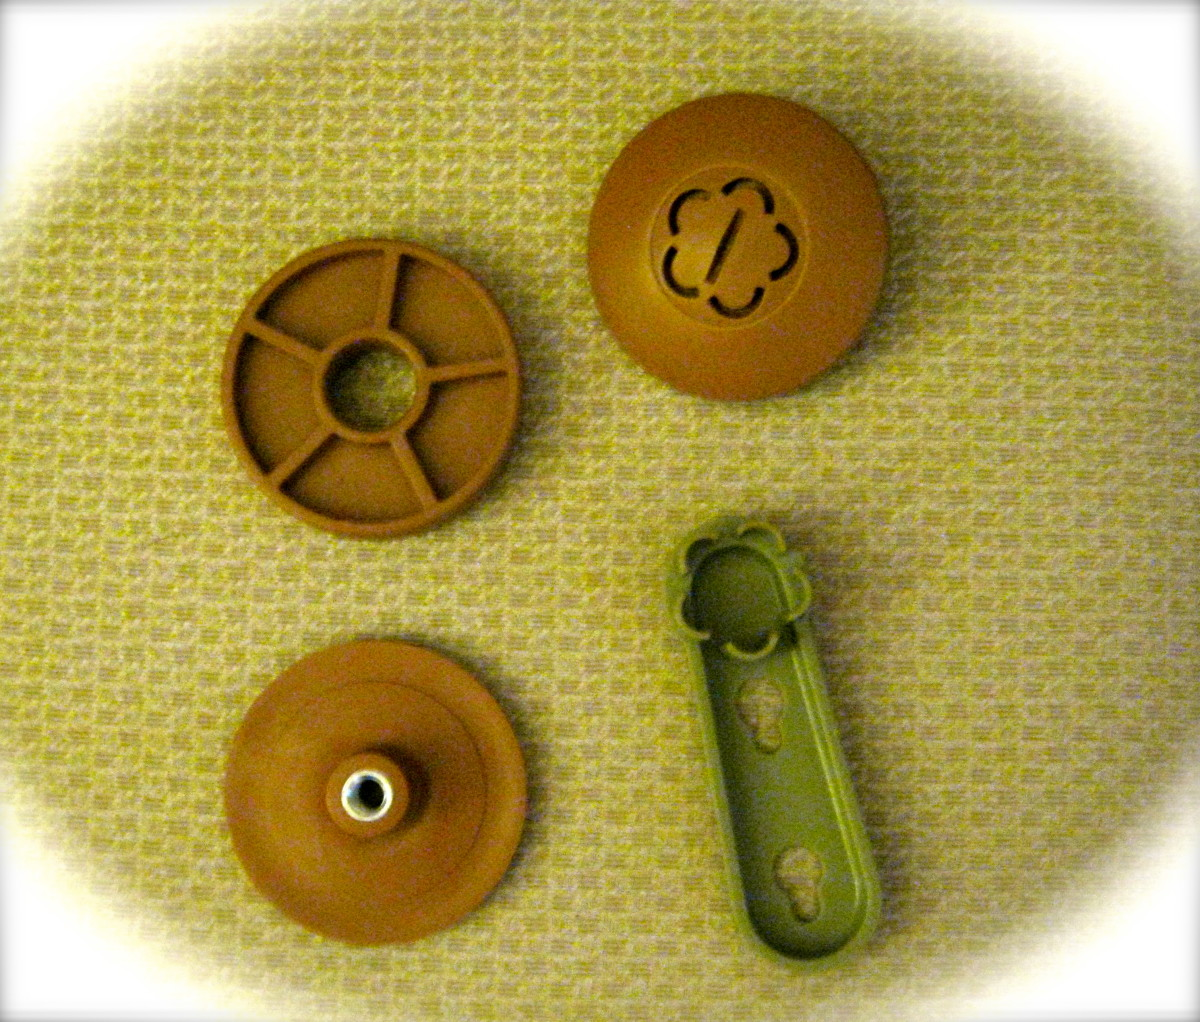 Parts included, clockwise from top left:  spacers; top cap; magic wrench; bottom cap.